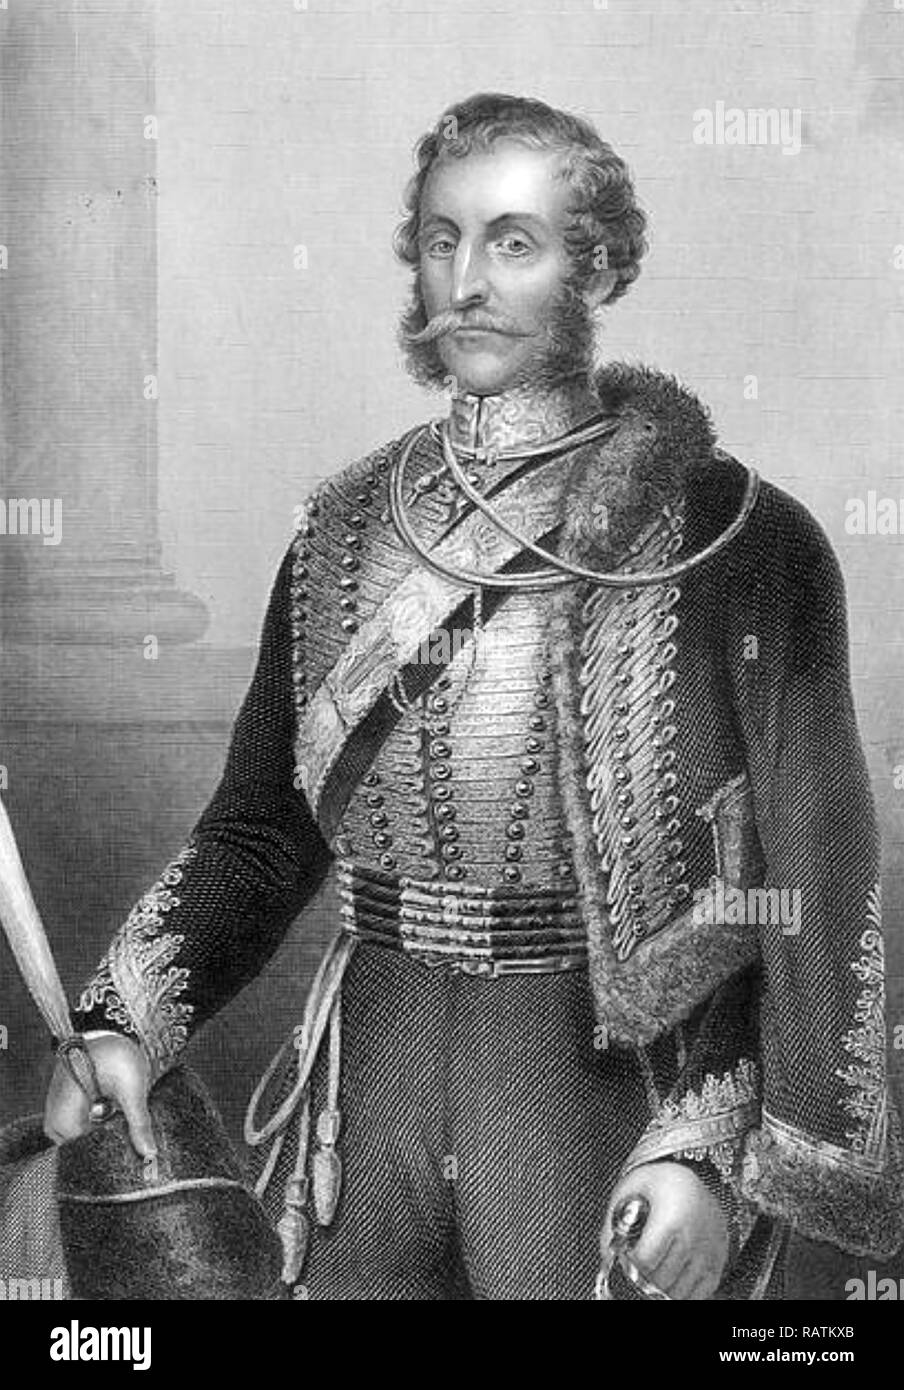 JAMES BRUDENELL, 7th Earl of Cardigan (1797-1868) British Army officer who led the Charge of the Light Brigade at the Battle of Balaclava in the Crimean War - Stock Image